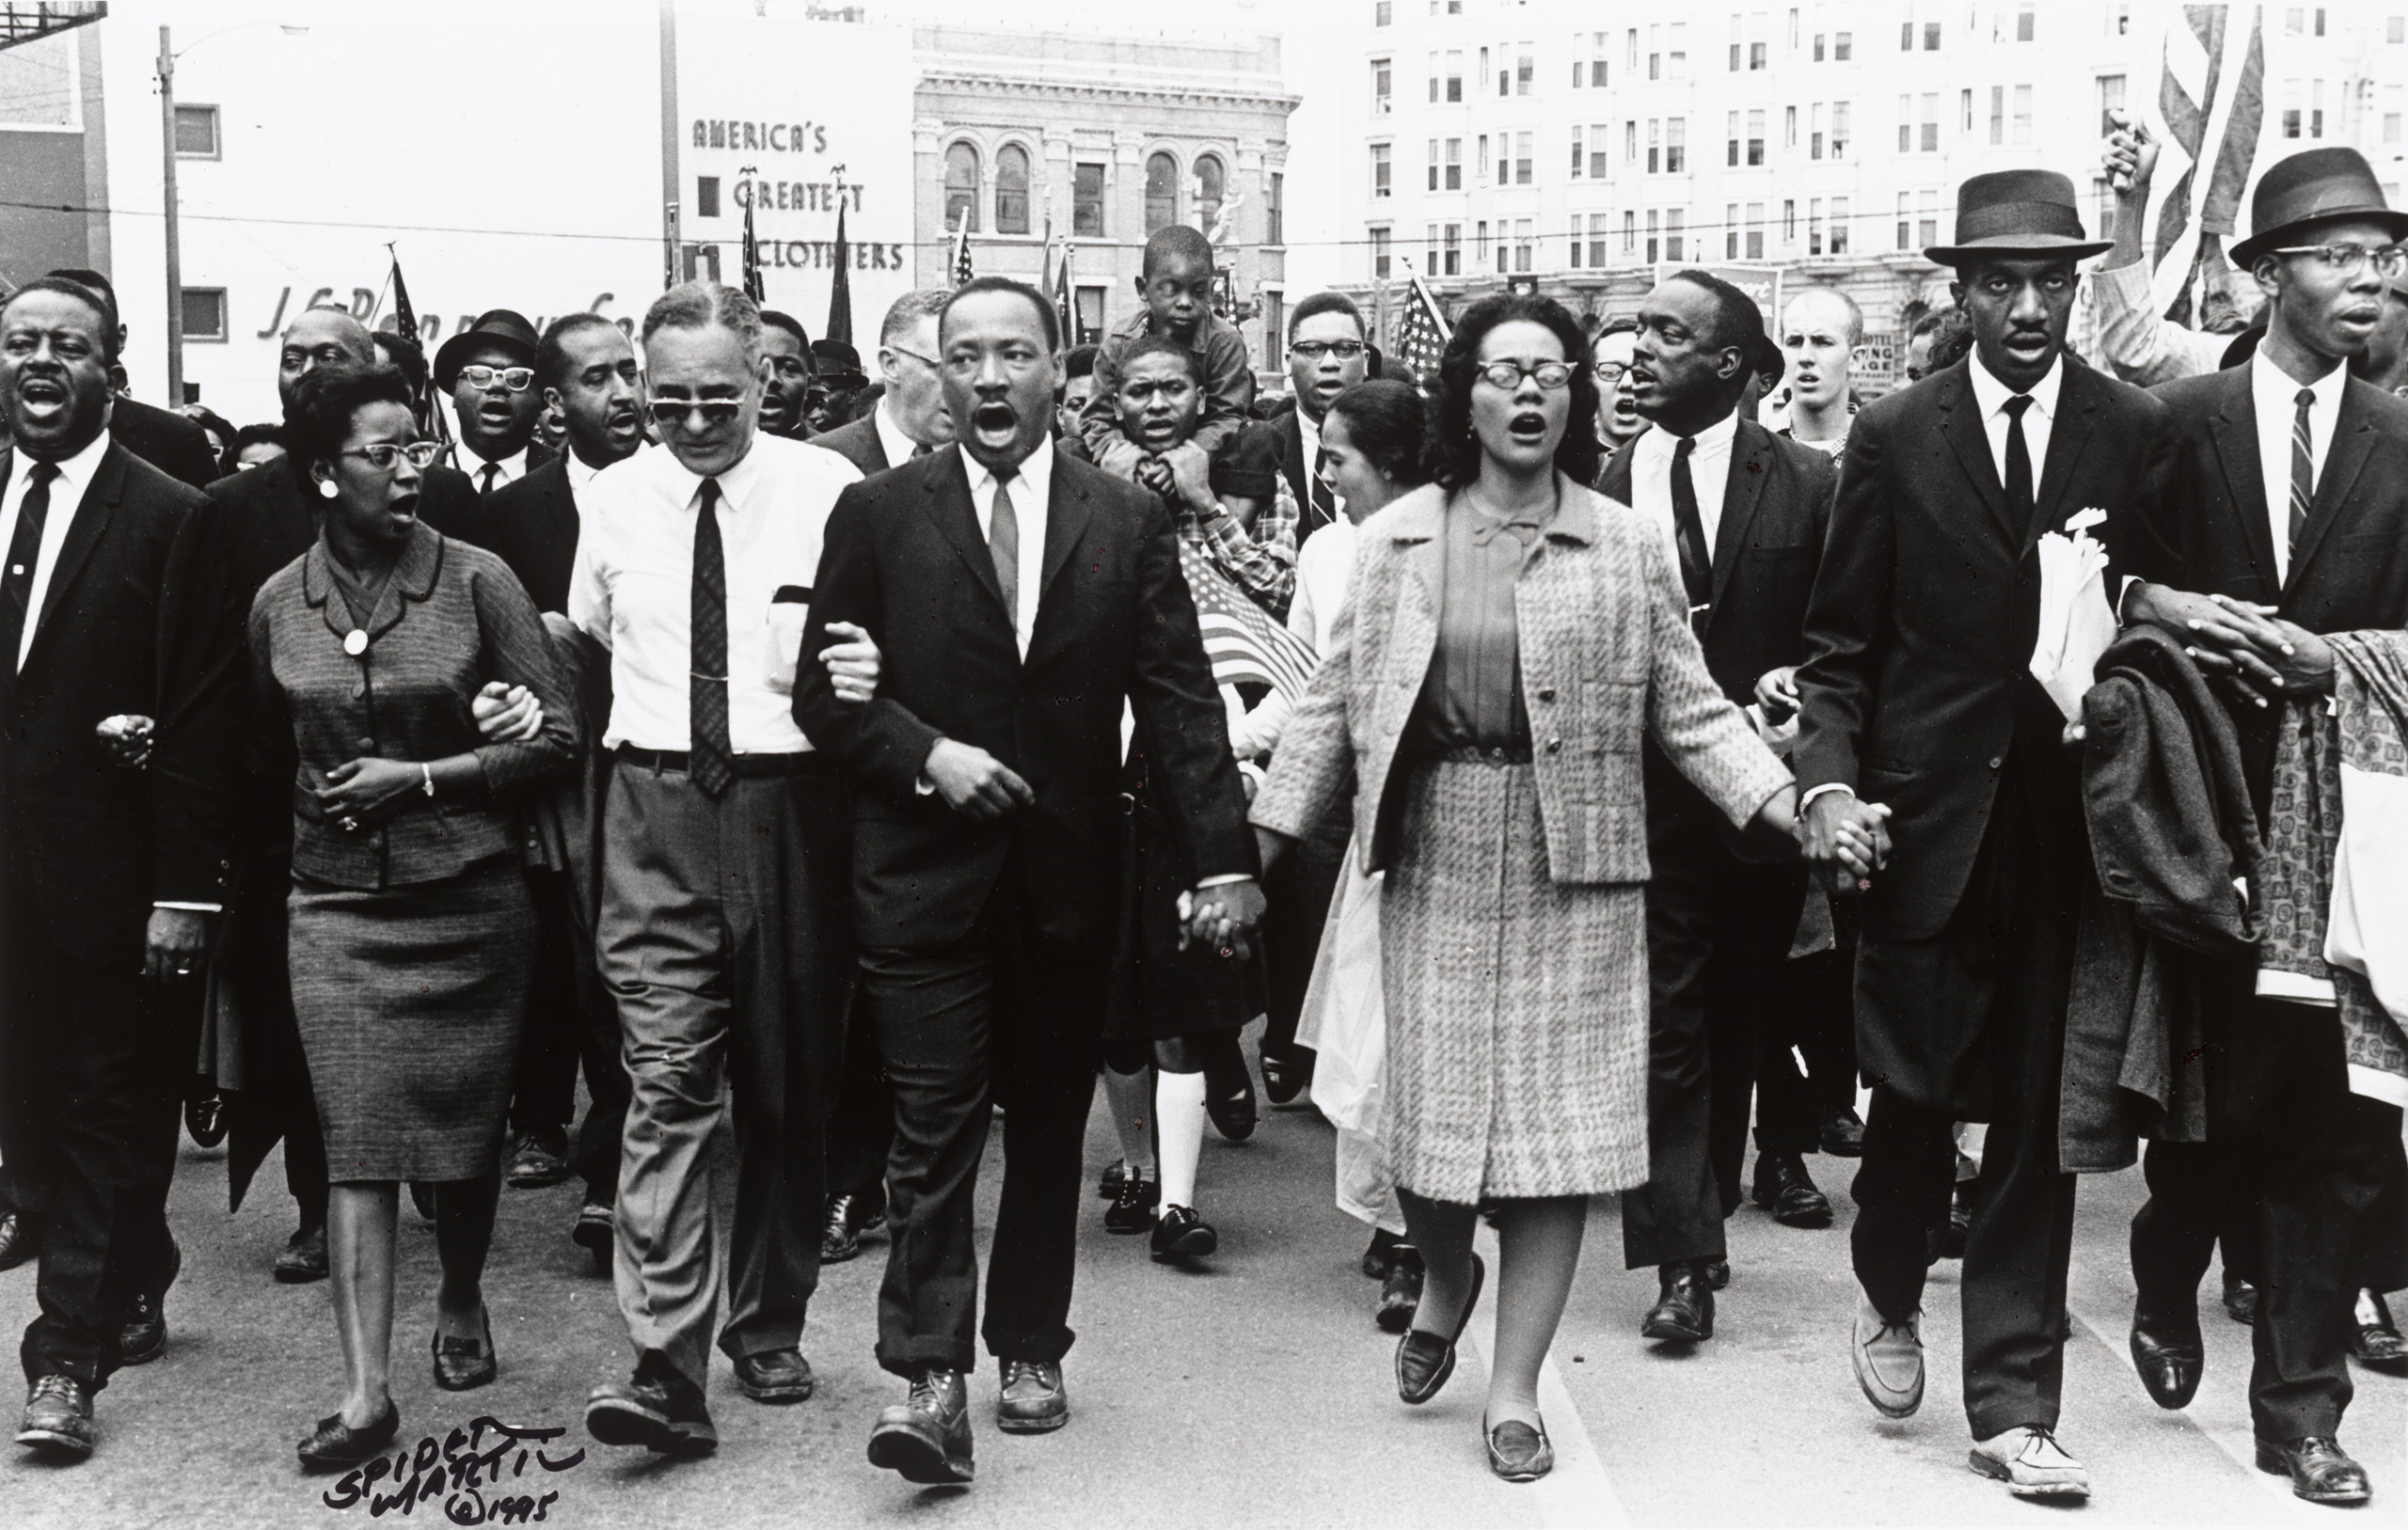 Dr, Martin Luther King and Coretta Scott King coming into Montgomery, 1965.